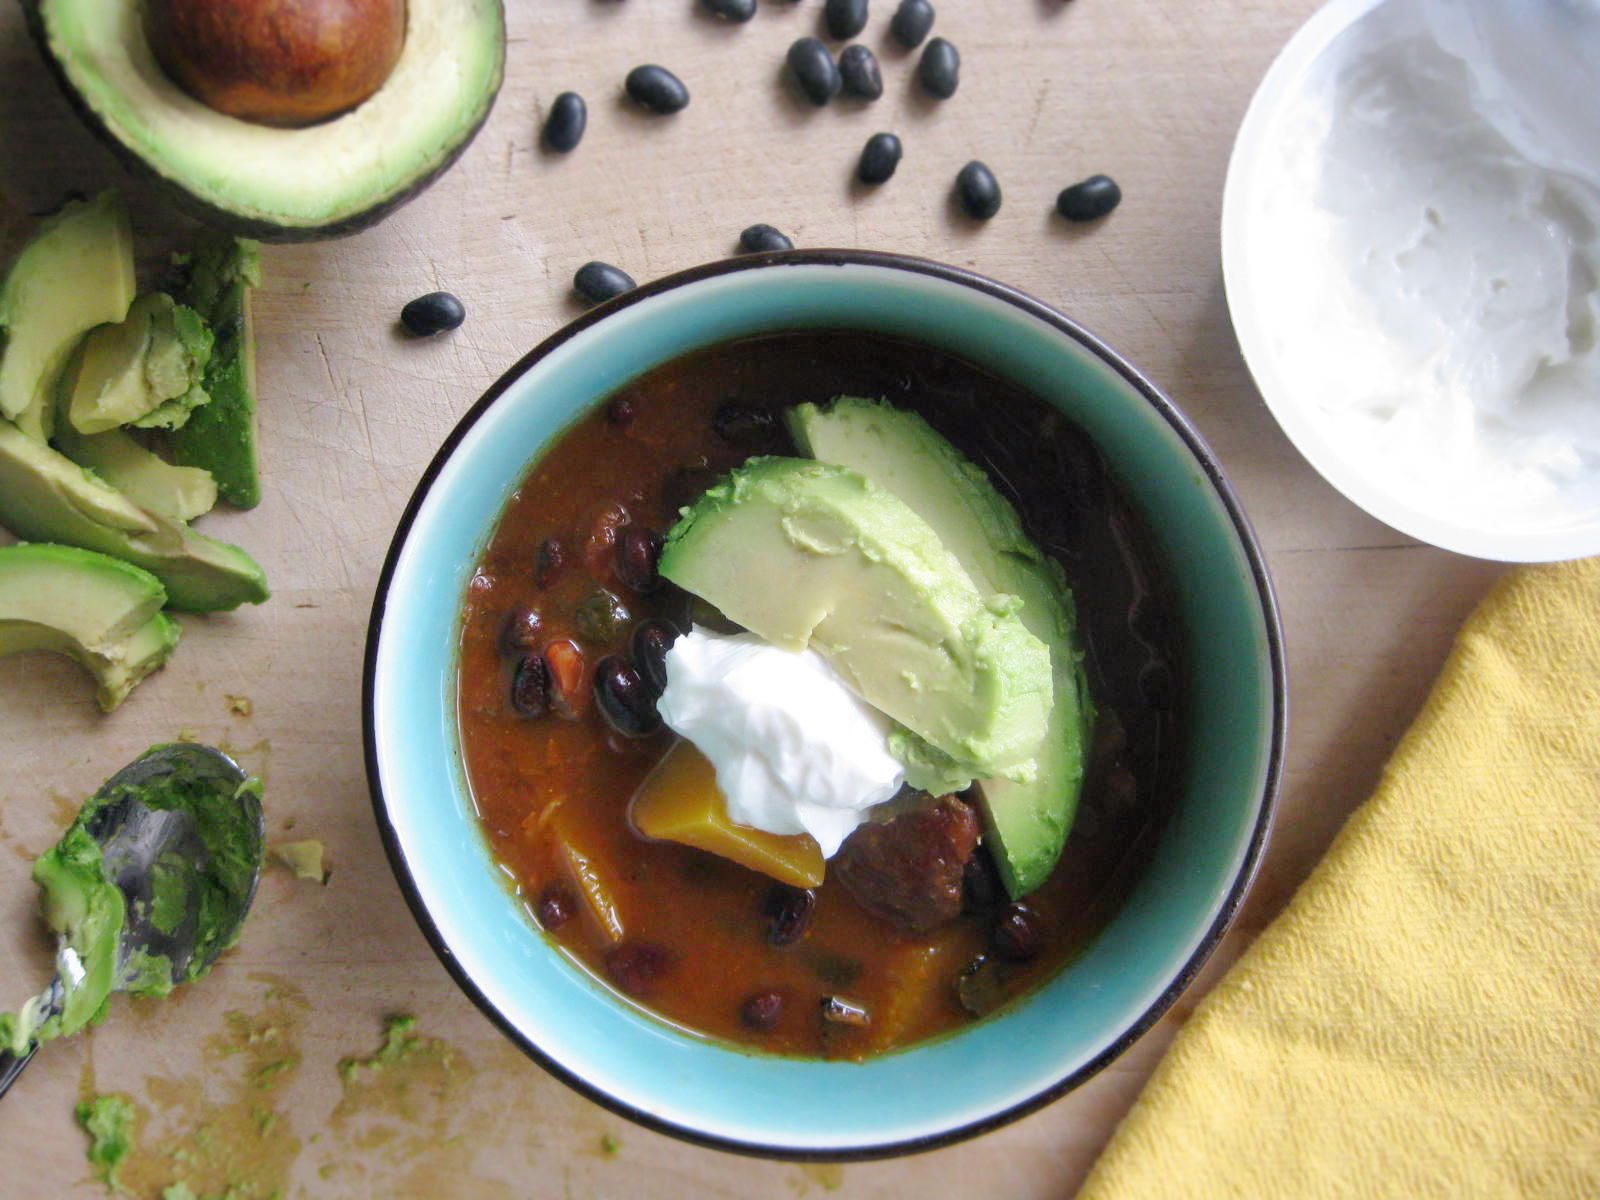 Spicy Black Bean and Butternut Squash Soup